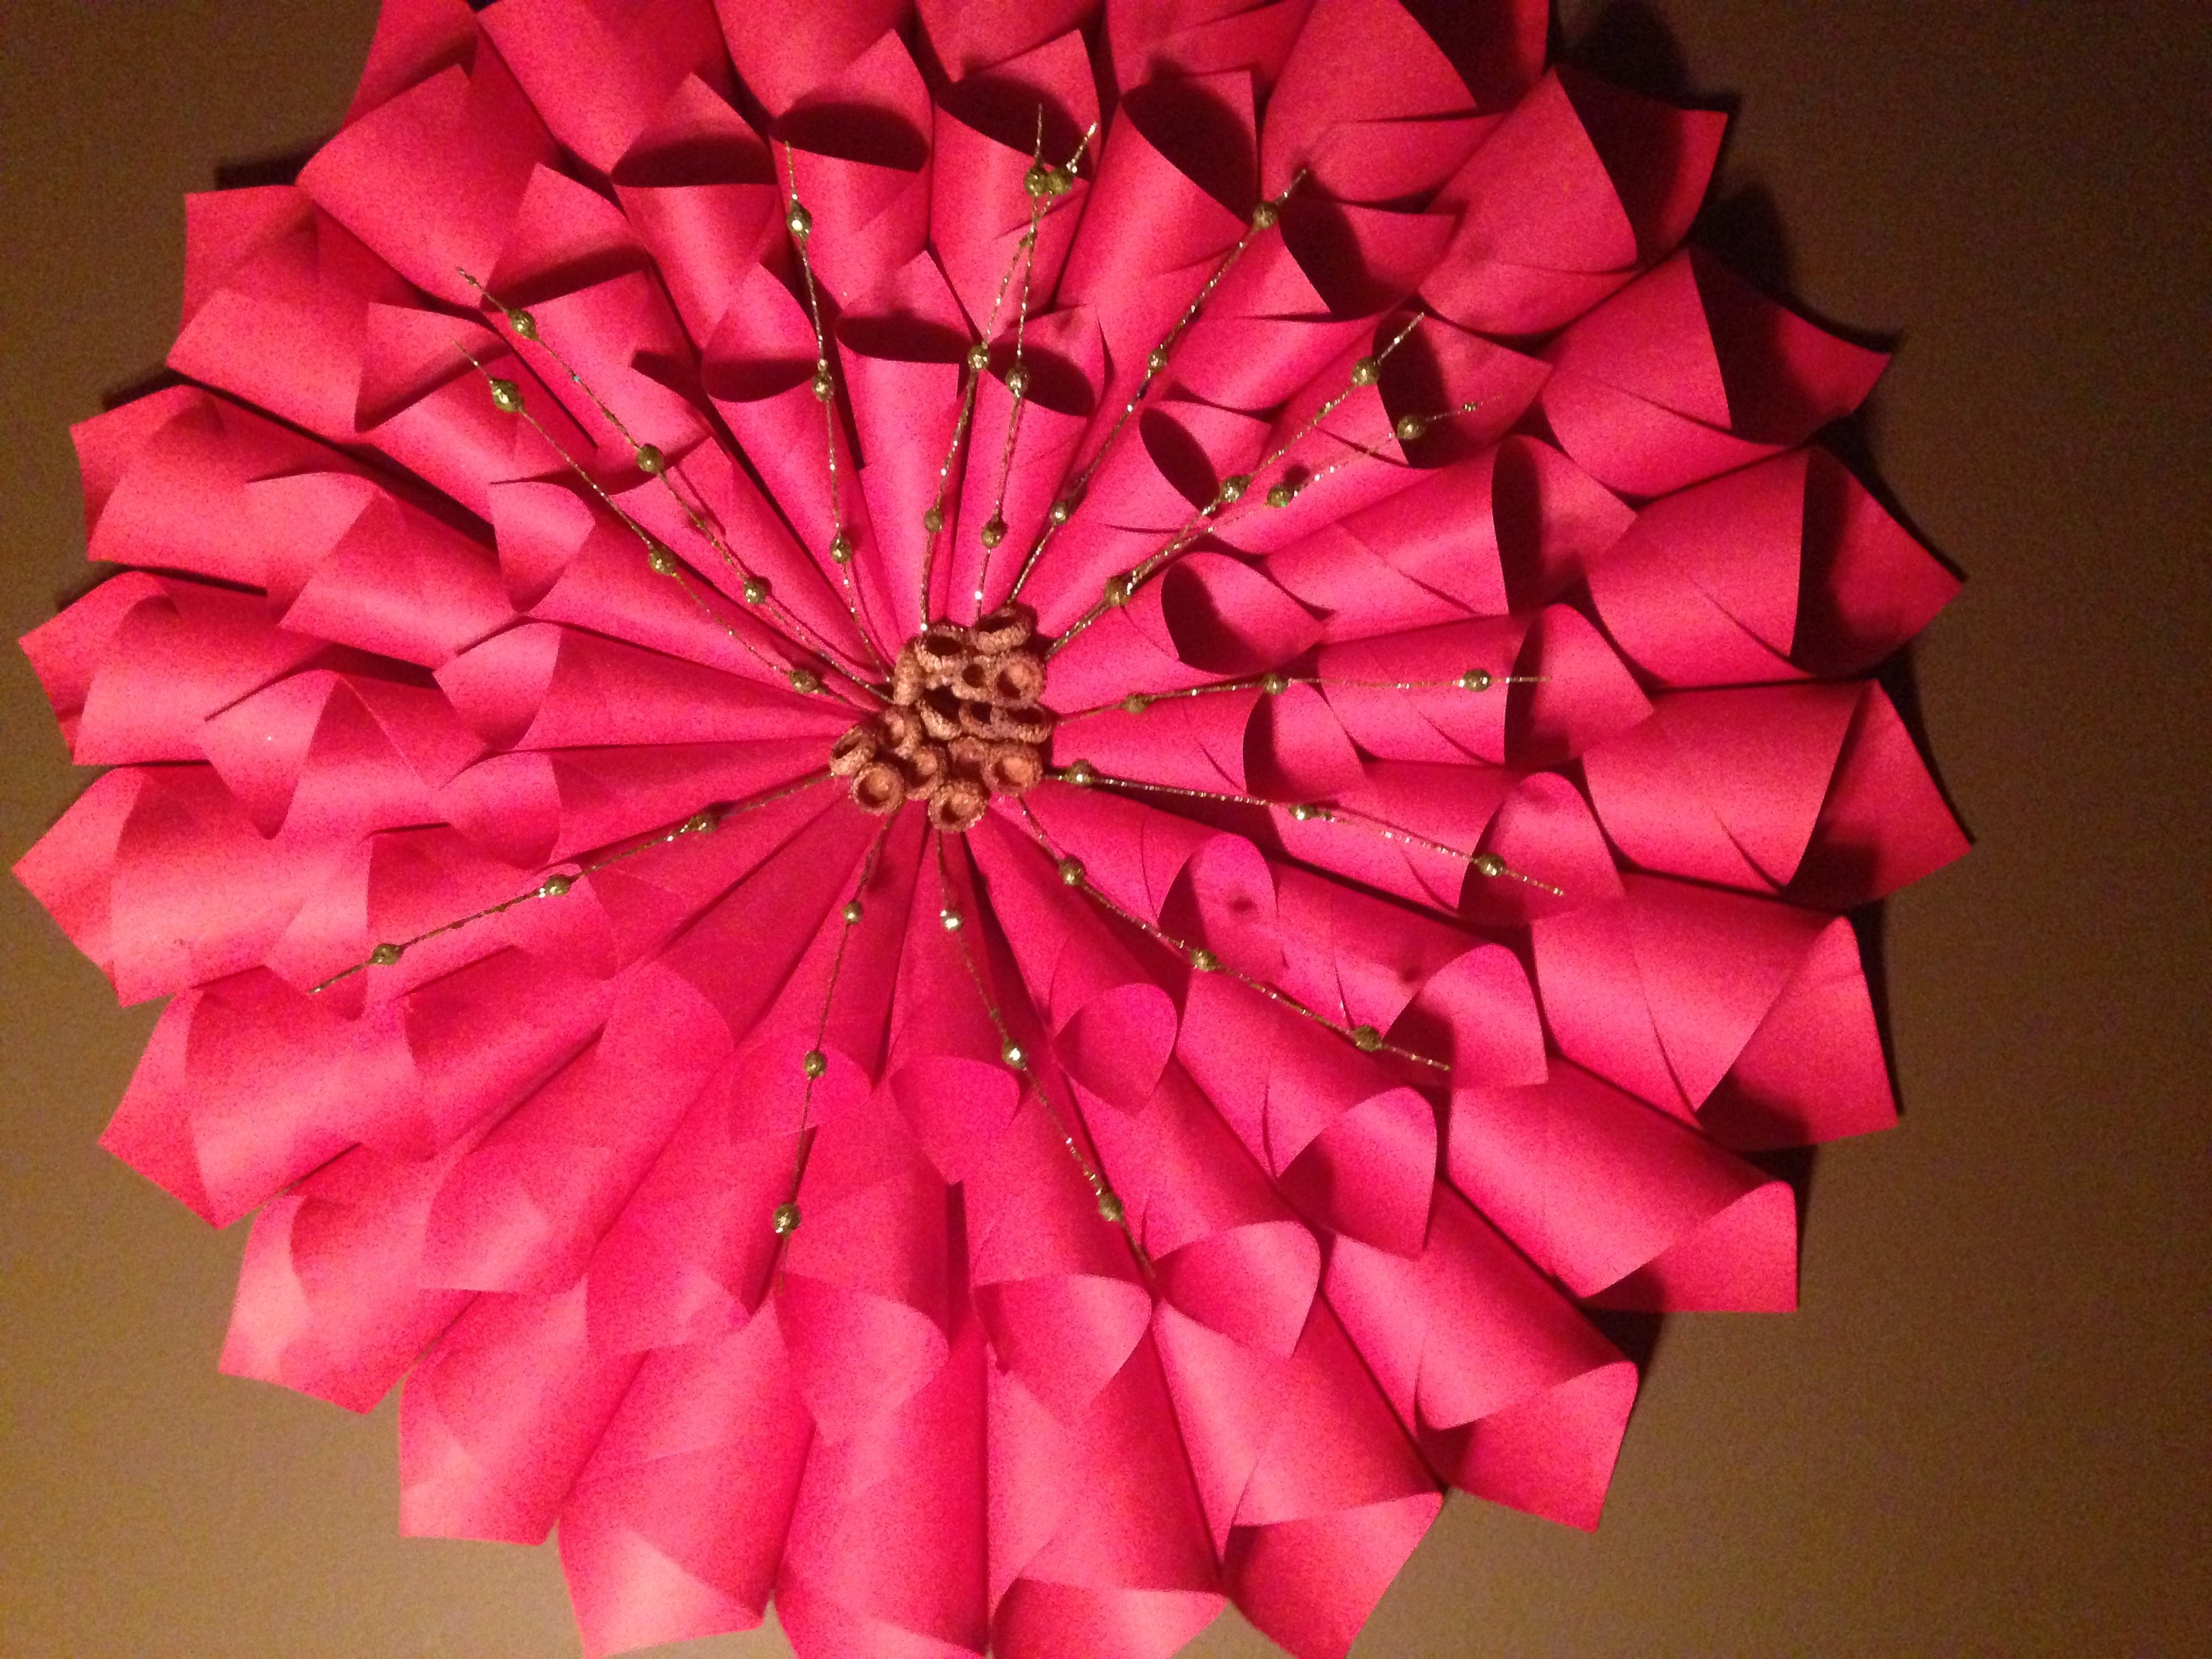 Wall Art With Construction Paper - Google Search | Crafts with Construction Paper Wall Art 27430